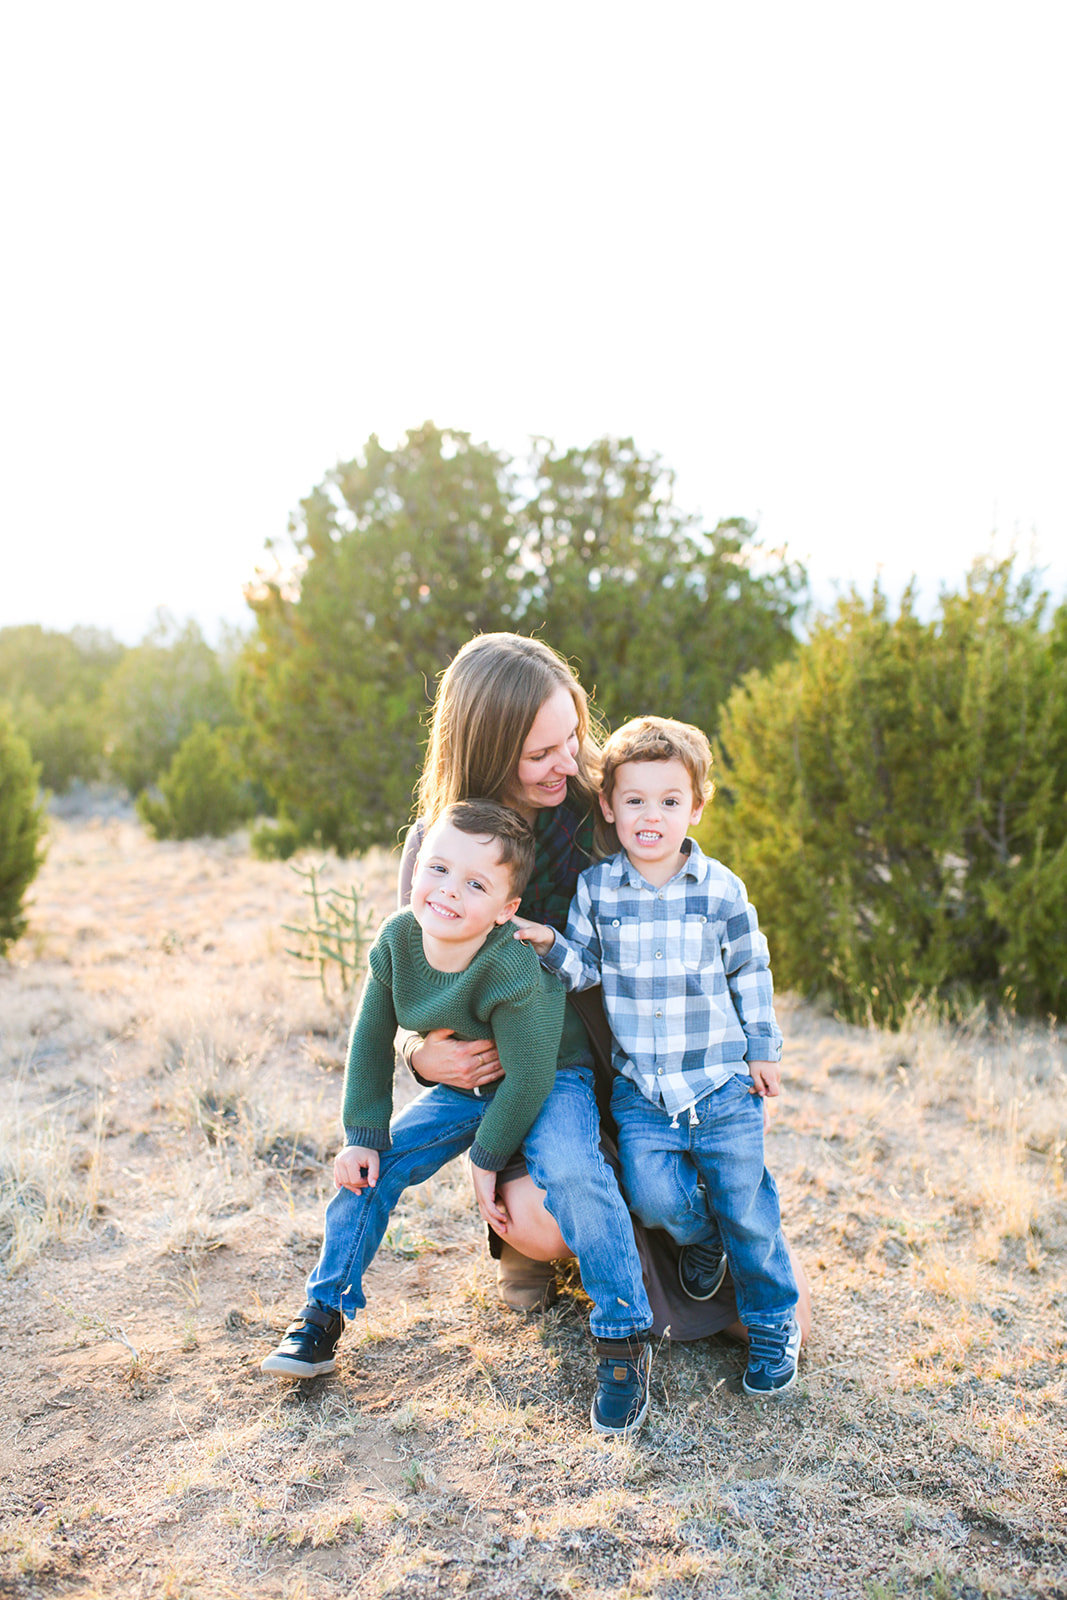 Albuquerque Family Photography_Foothills_www.tylerbrooke.com_Kate Kauffman_026